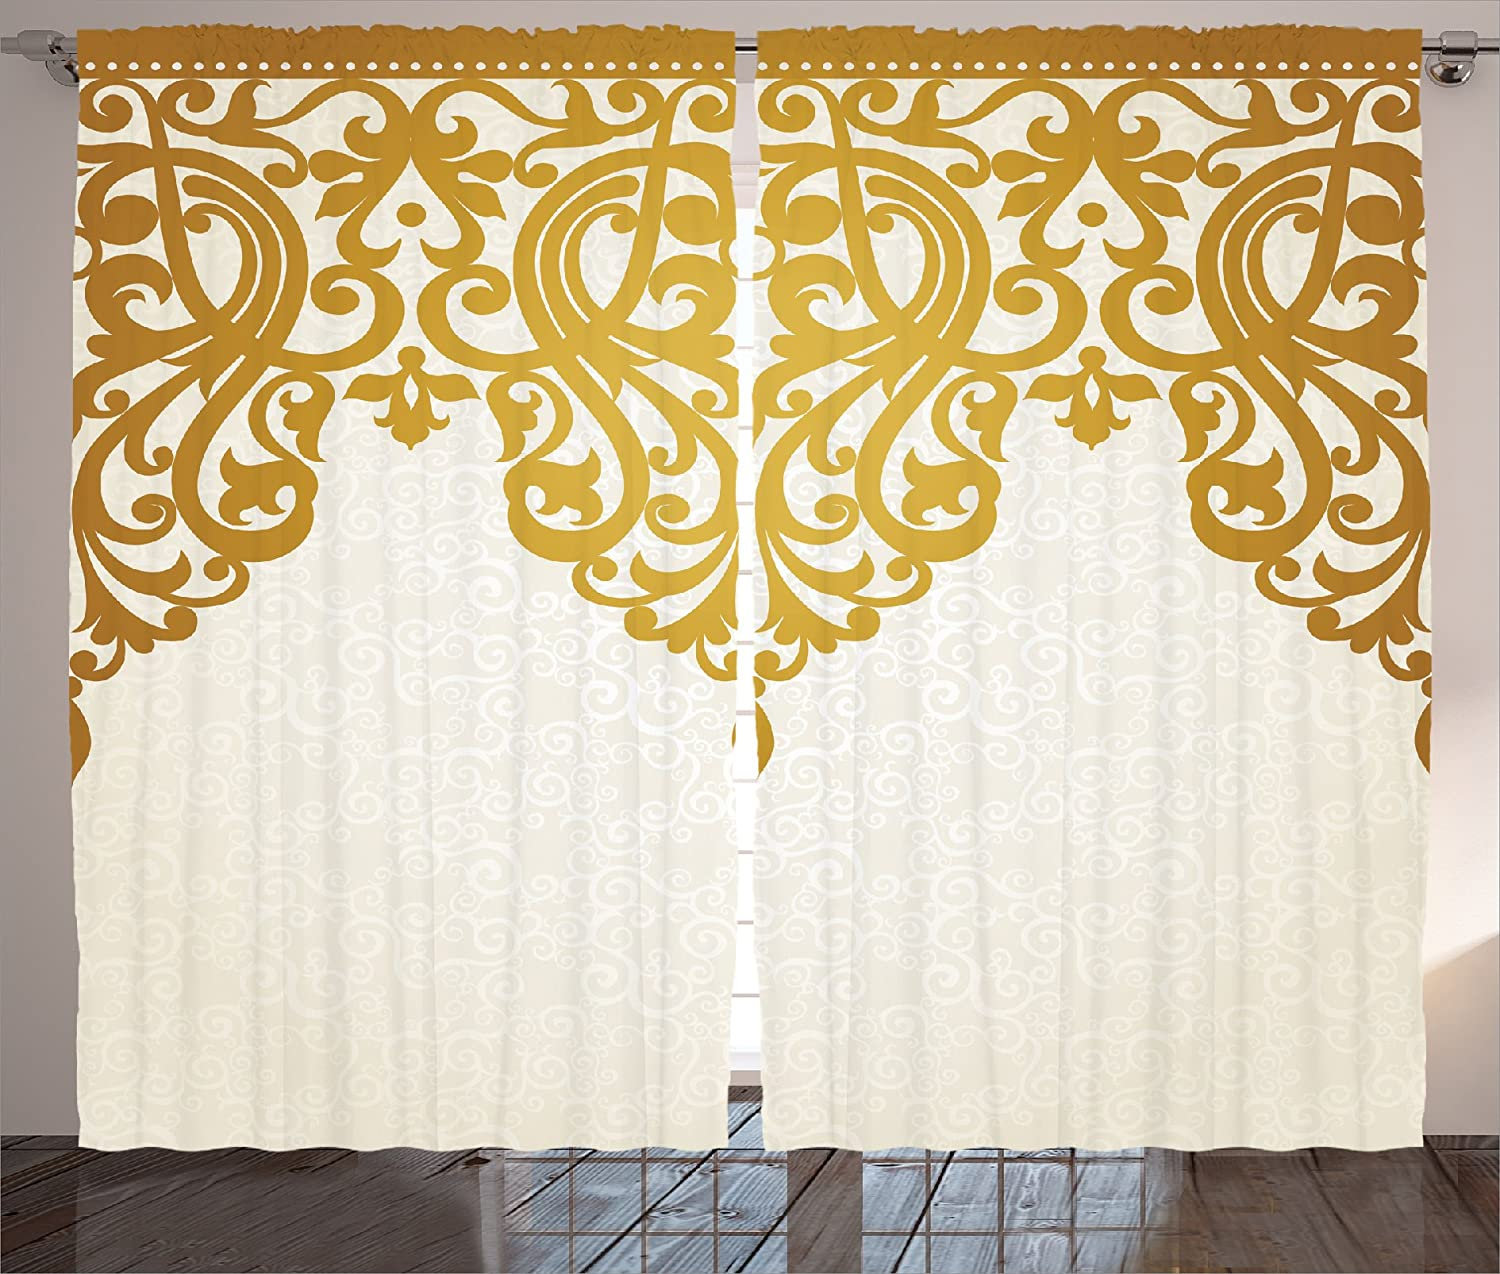 Ambesonne Off White Curtains Antique Decor, Victorian Style Medieval Motifs with Classic Baroque Oriental Decorating Shapes, Living Room Bedroom Curtain 2 Panels Set, 108 X 84 Inches, Golden Cream